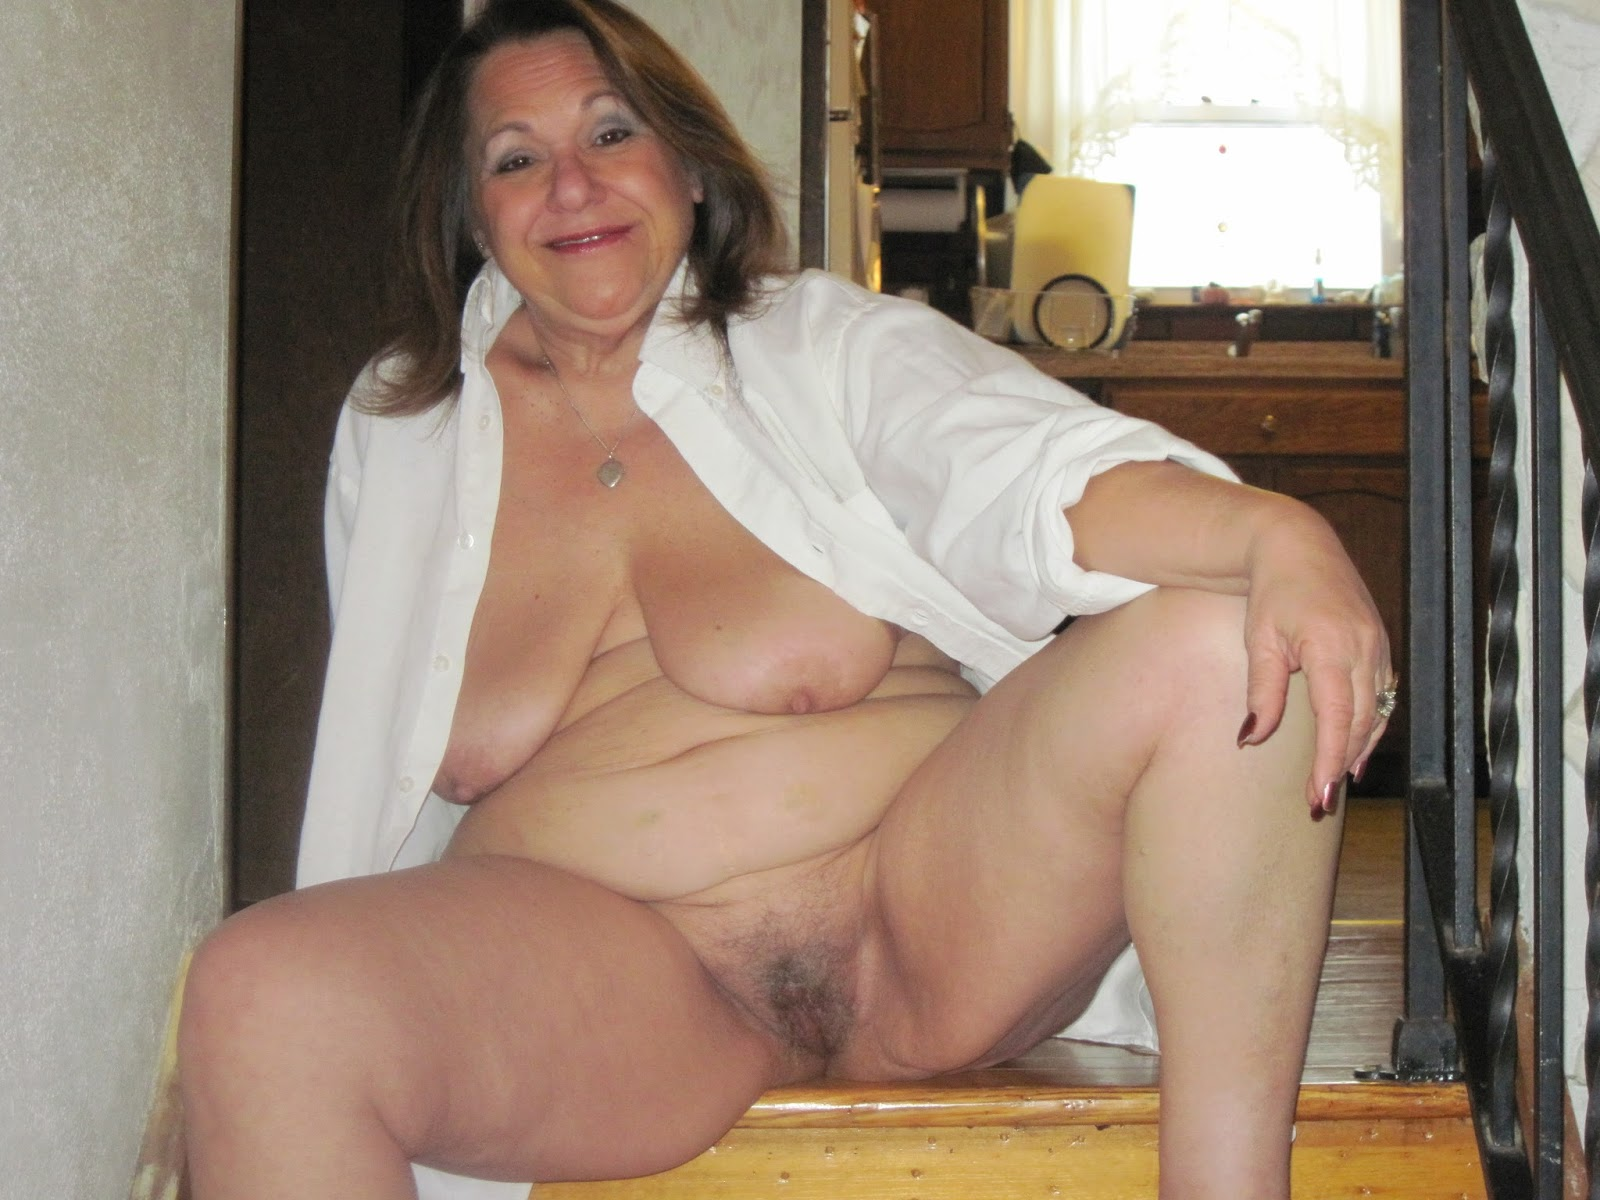 Congratulate, naked mature women with legs spread right! like